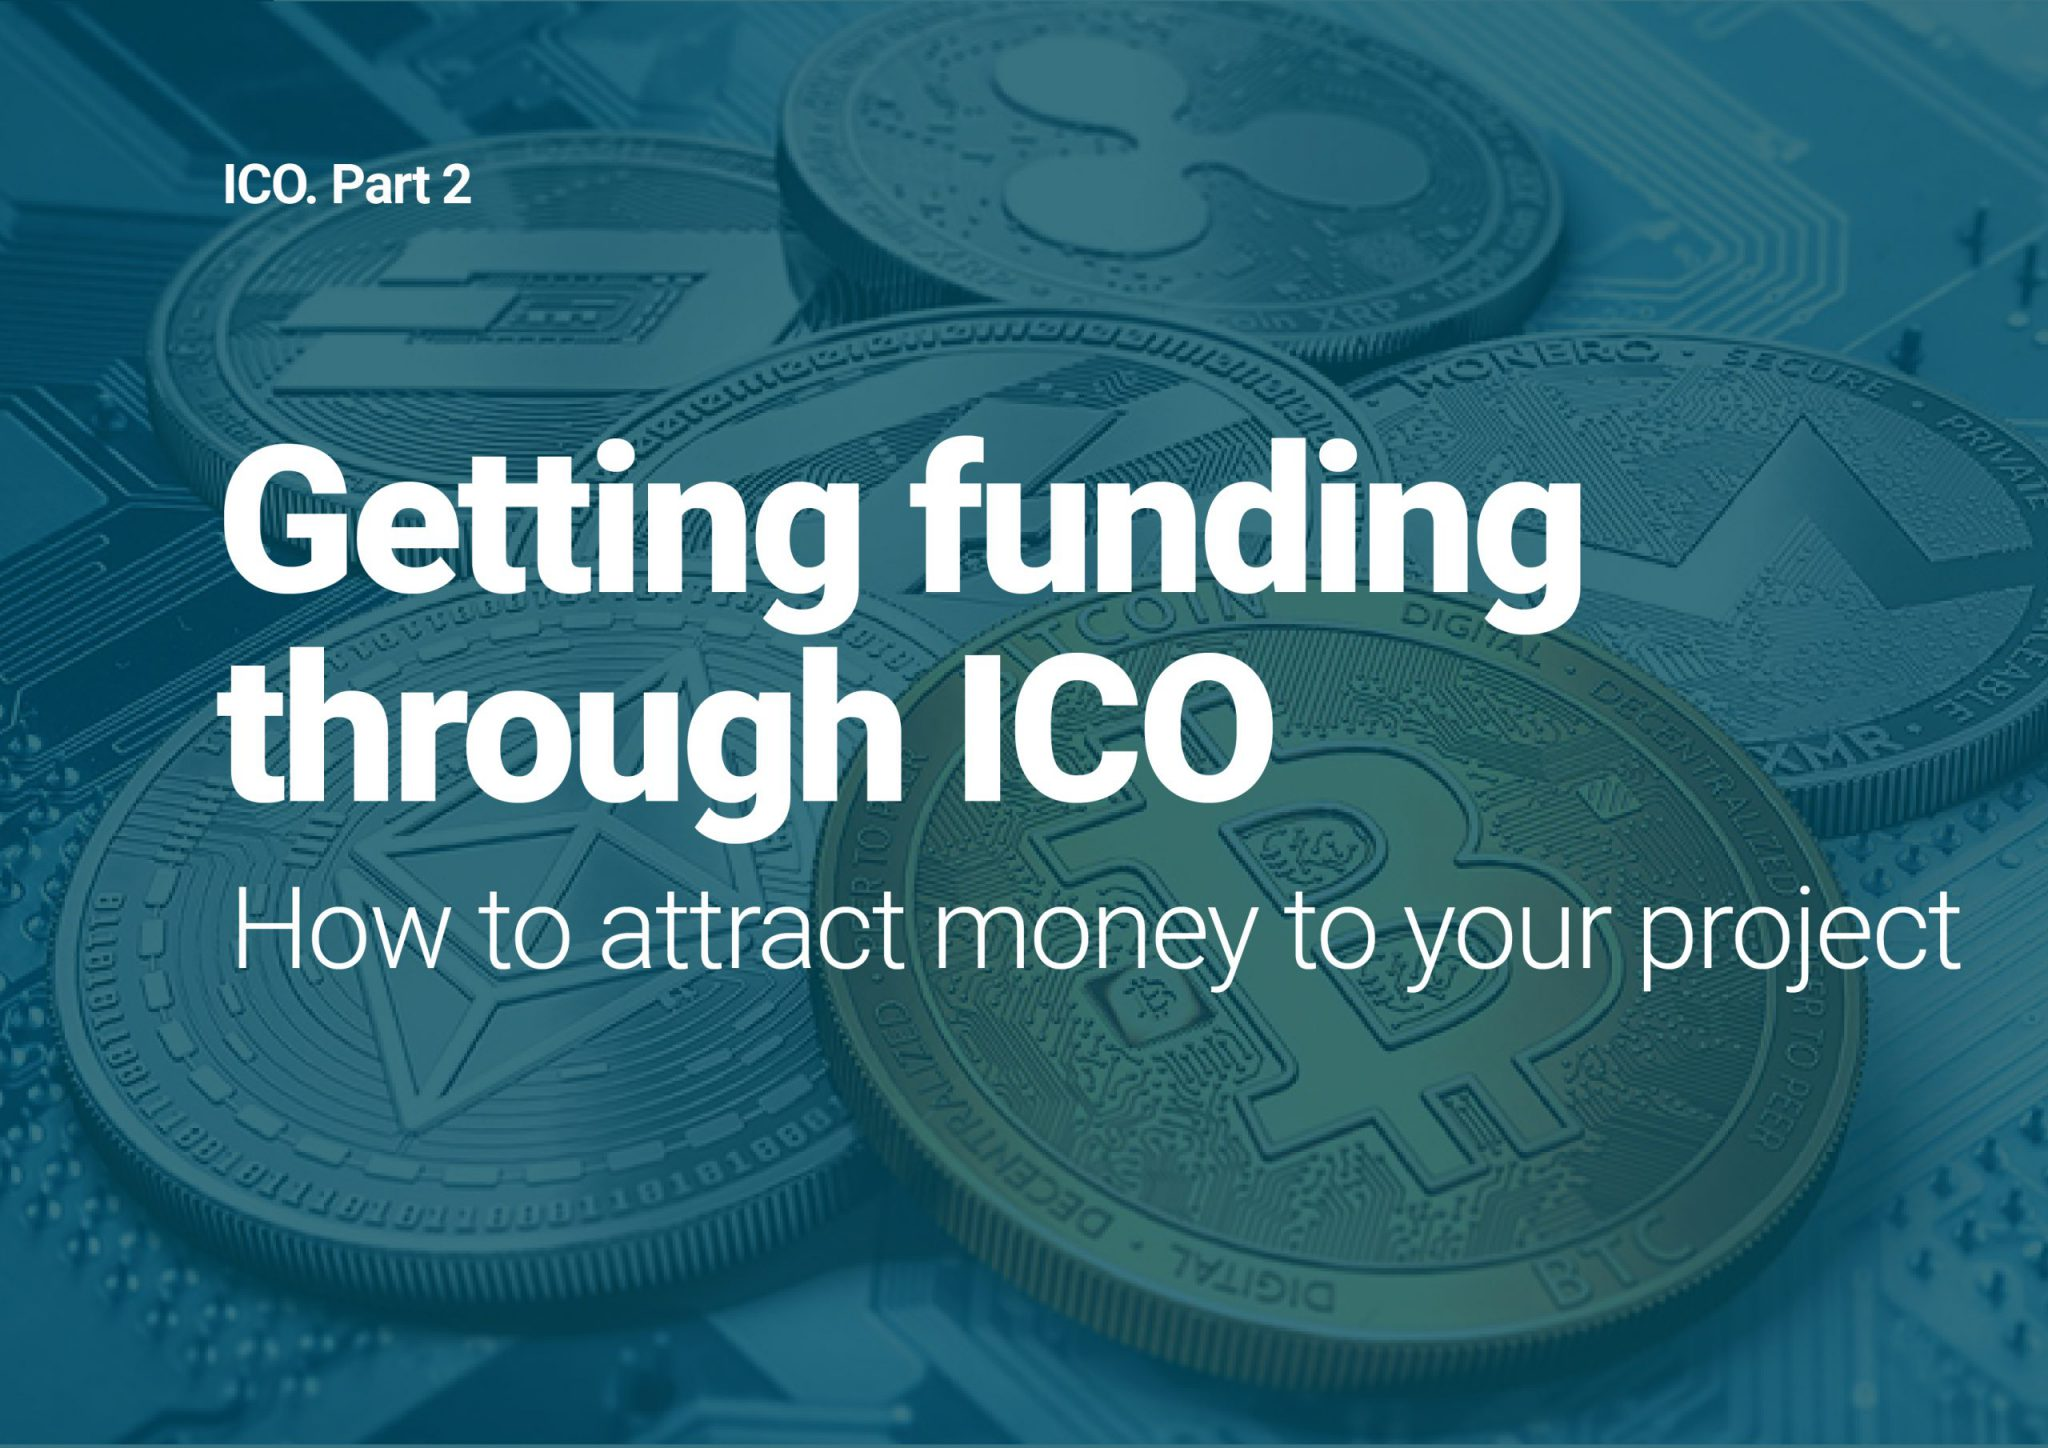 ICO. Part 2. Getting funding through ICO. How to attract money to your project